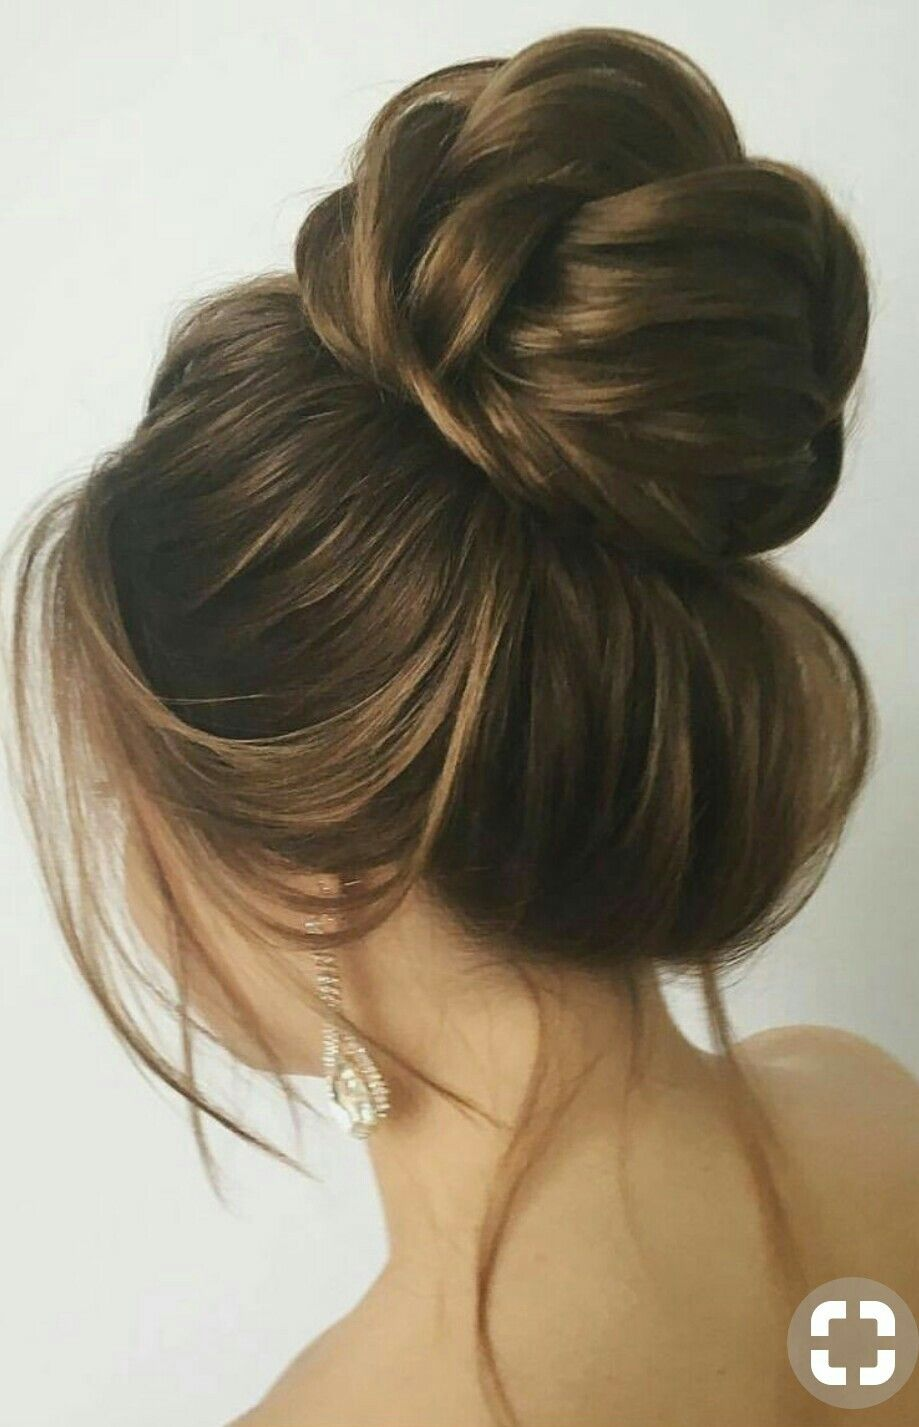 Pin by emerald on hair in pinterest hair hair styles and